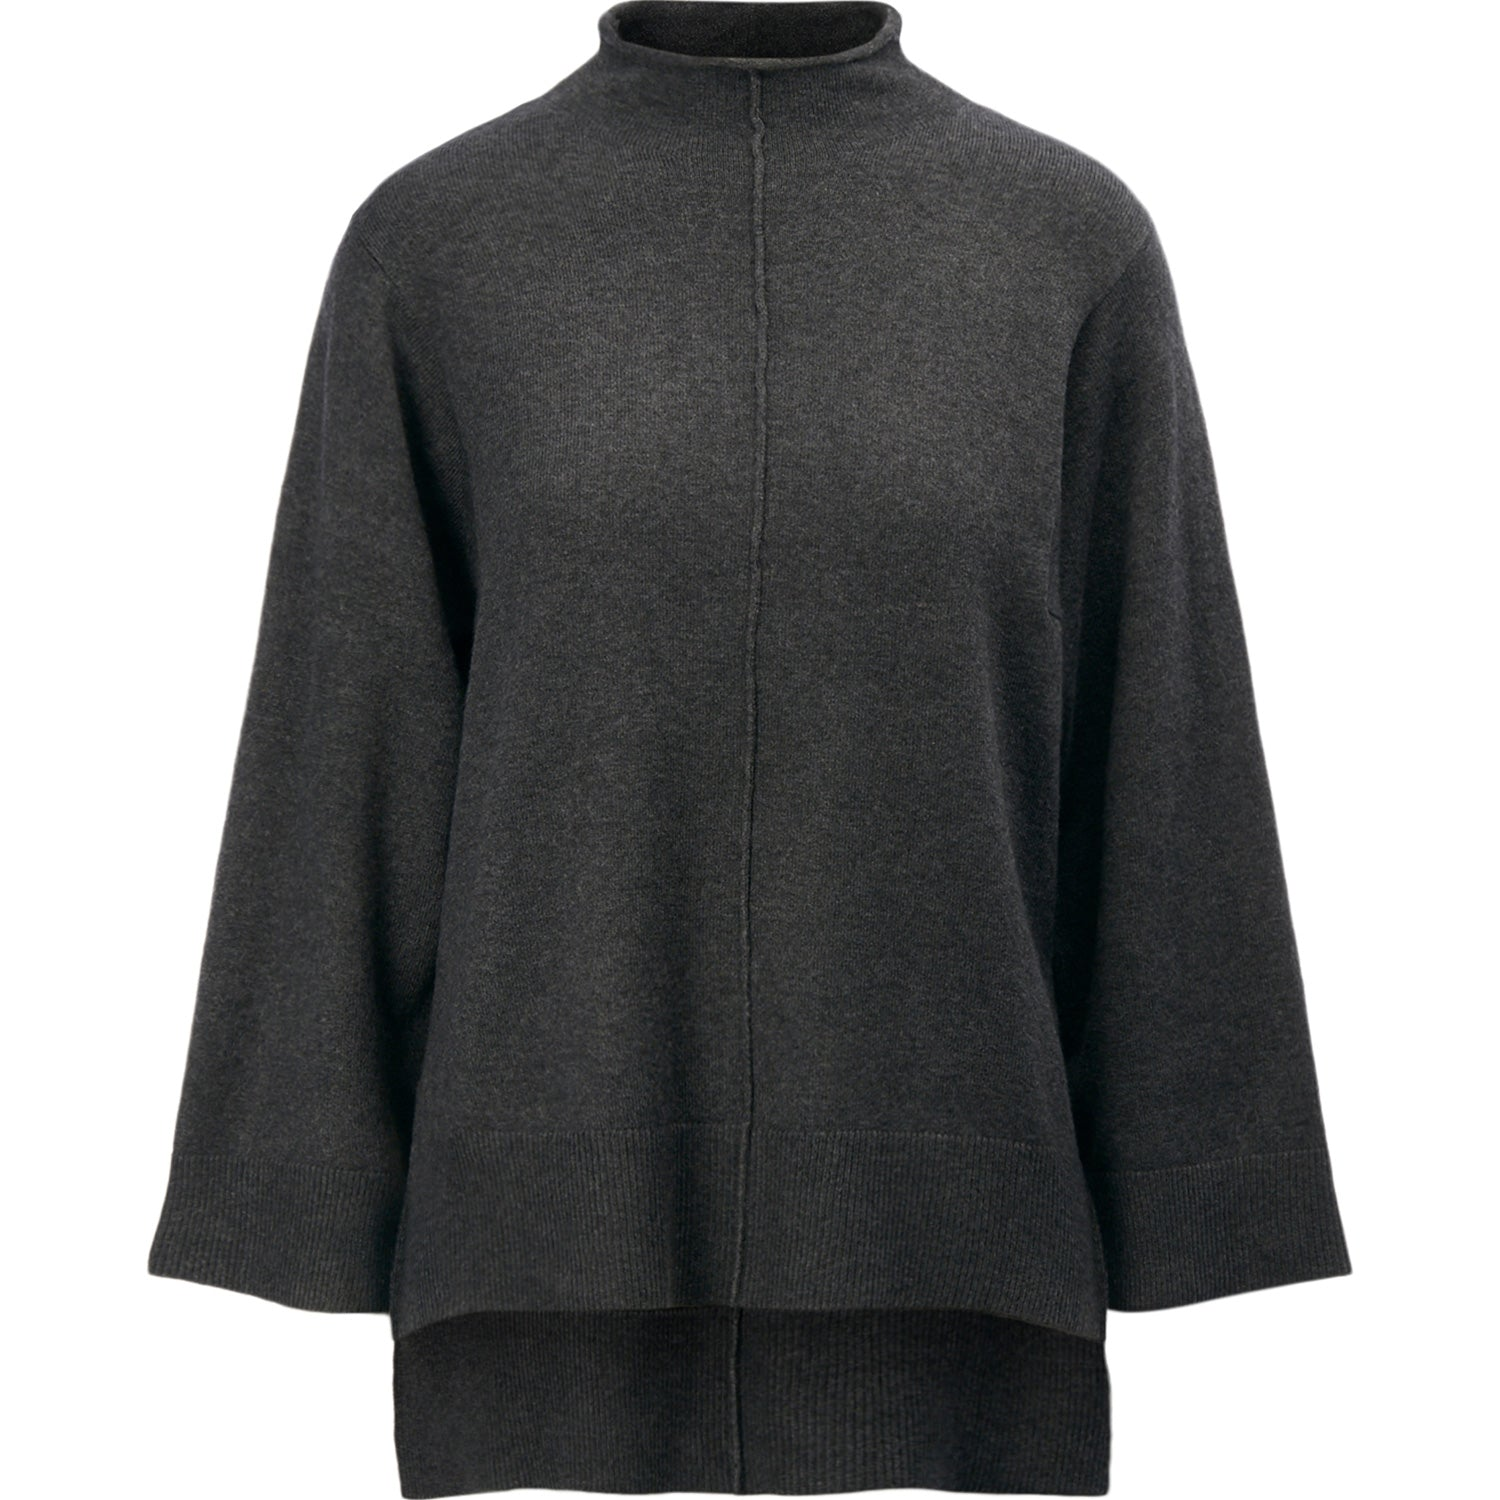 52d6a56996a https://www.thelasthunt.com/products/french-connection-womens ...